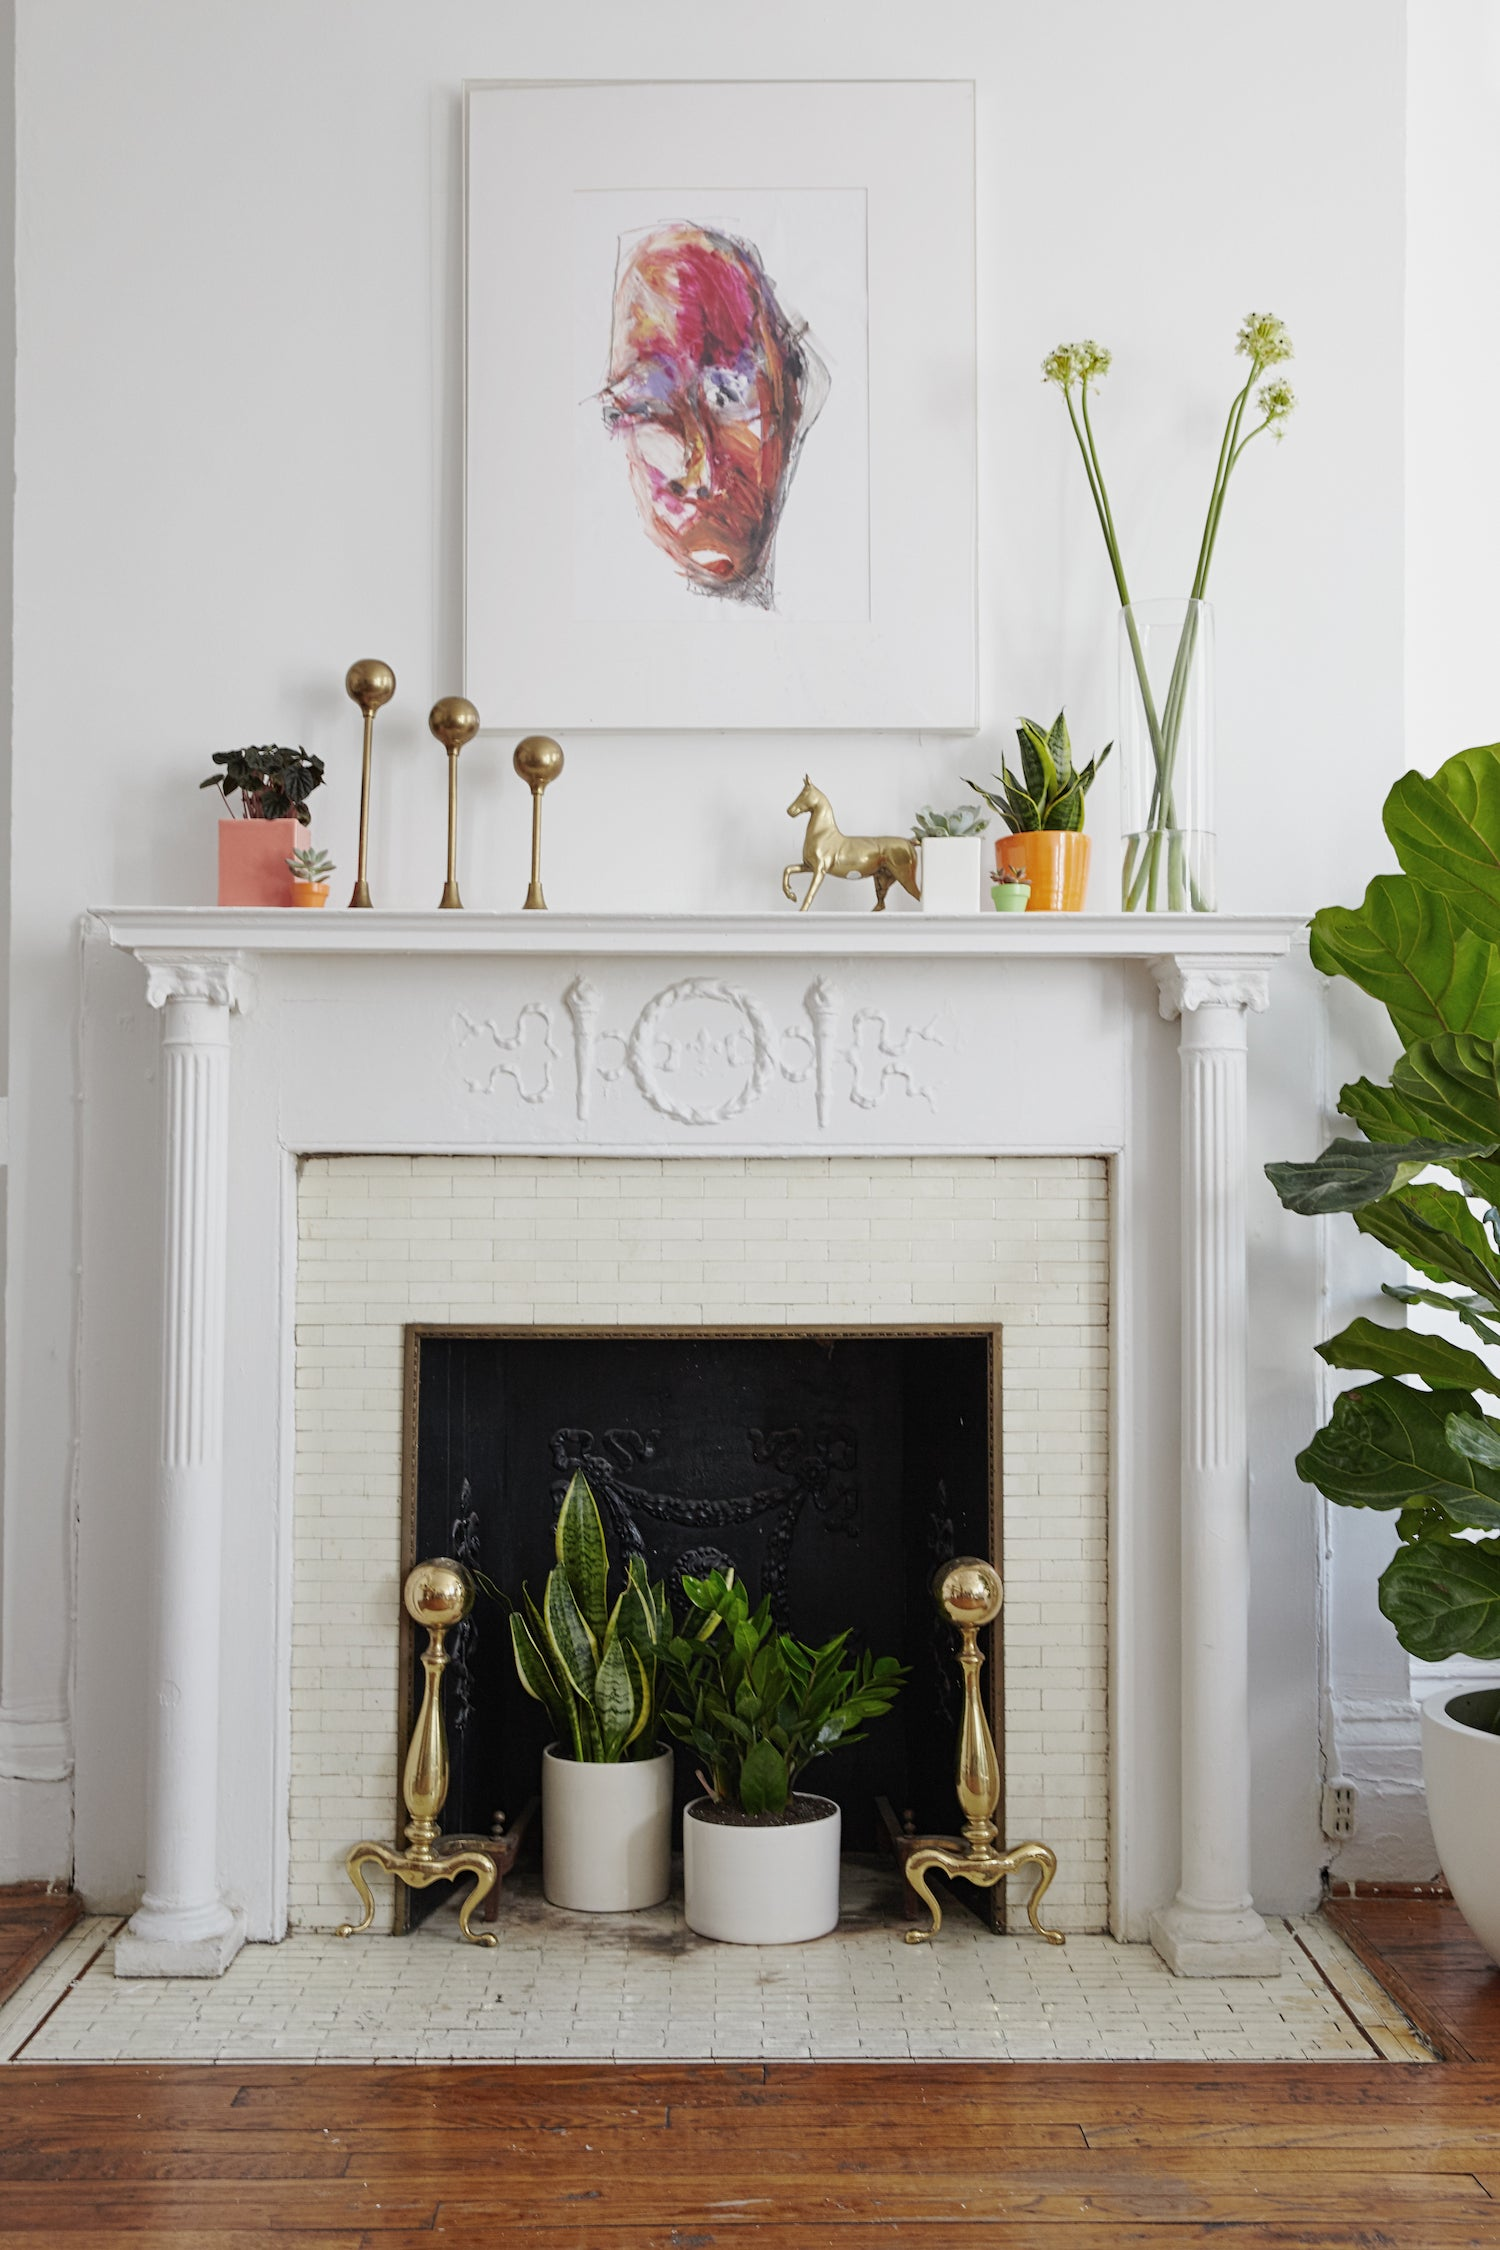 Happy at Home: A Houseplant Care Guide | Schoolhouse